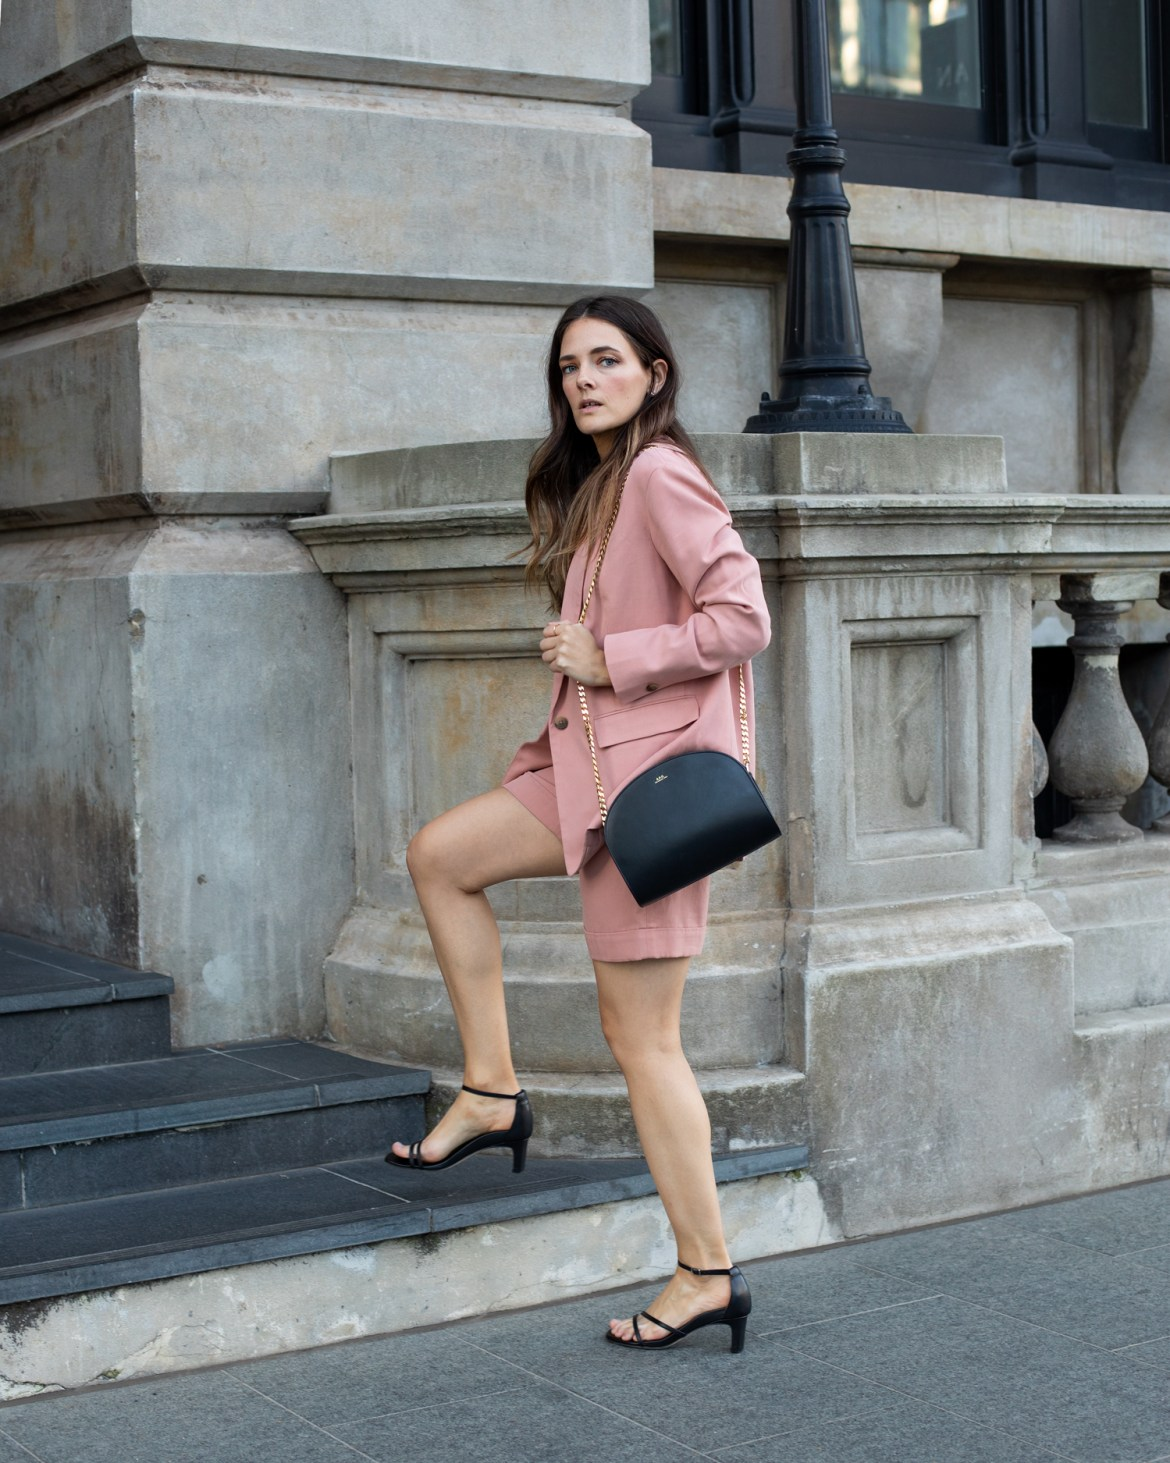 Everlane summer shorts suit in dusty pink. How to wear a matching set suit and look chic for summer days